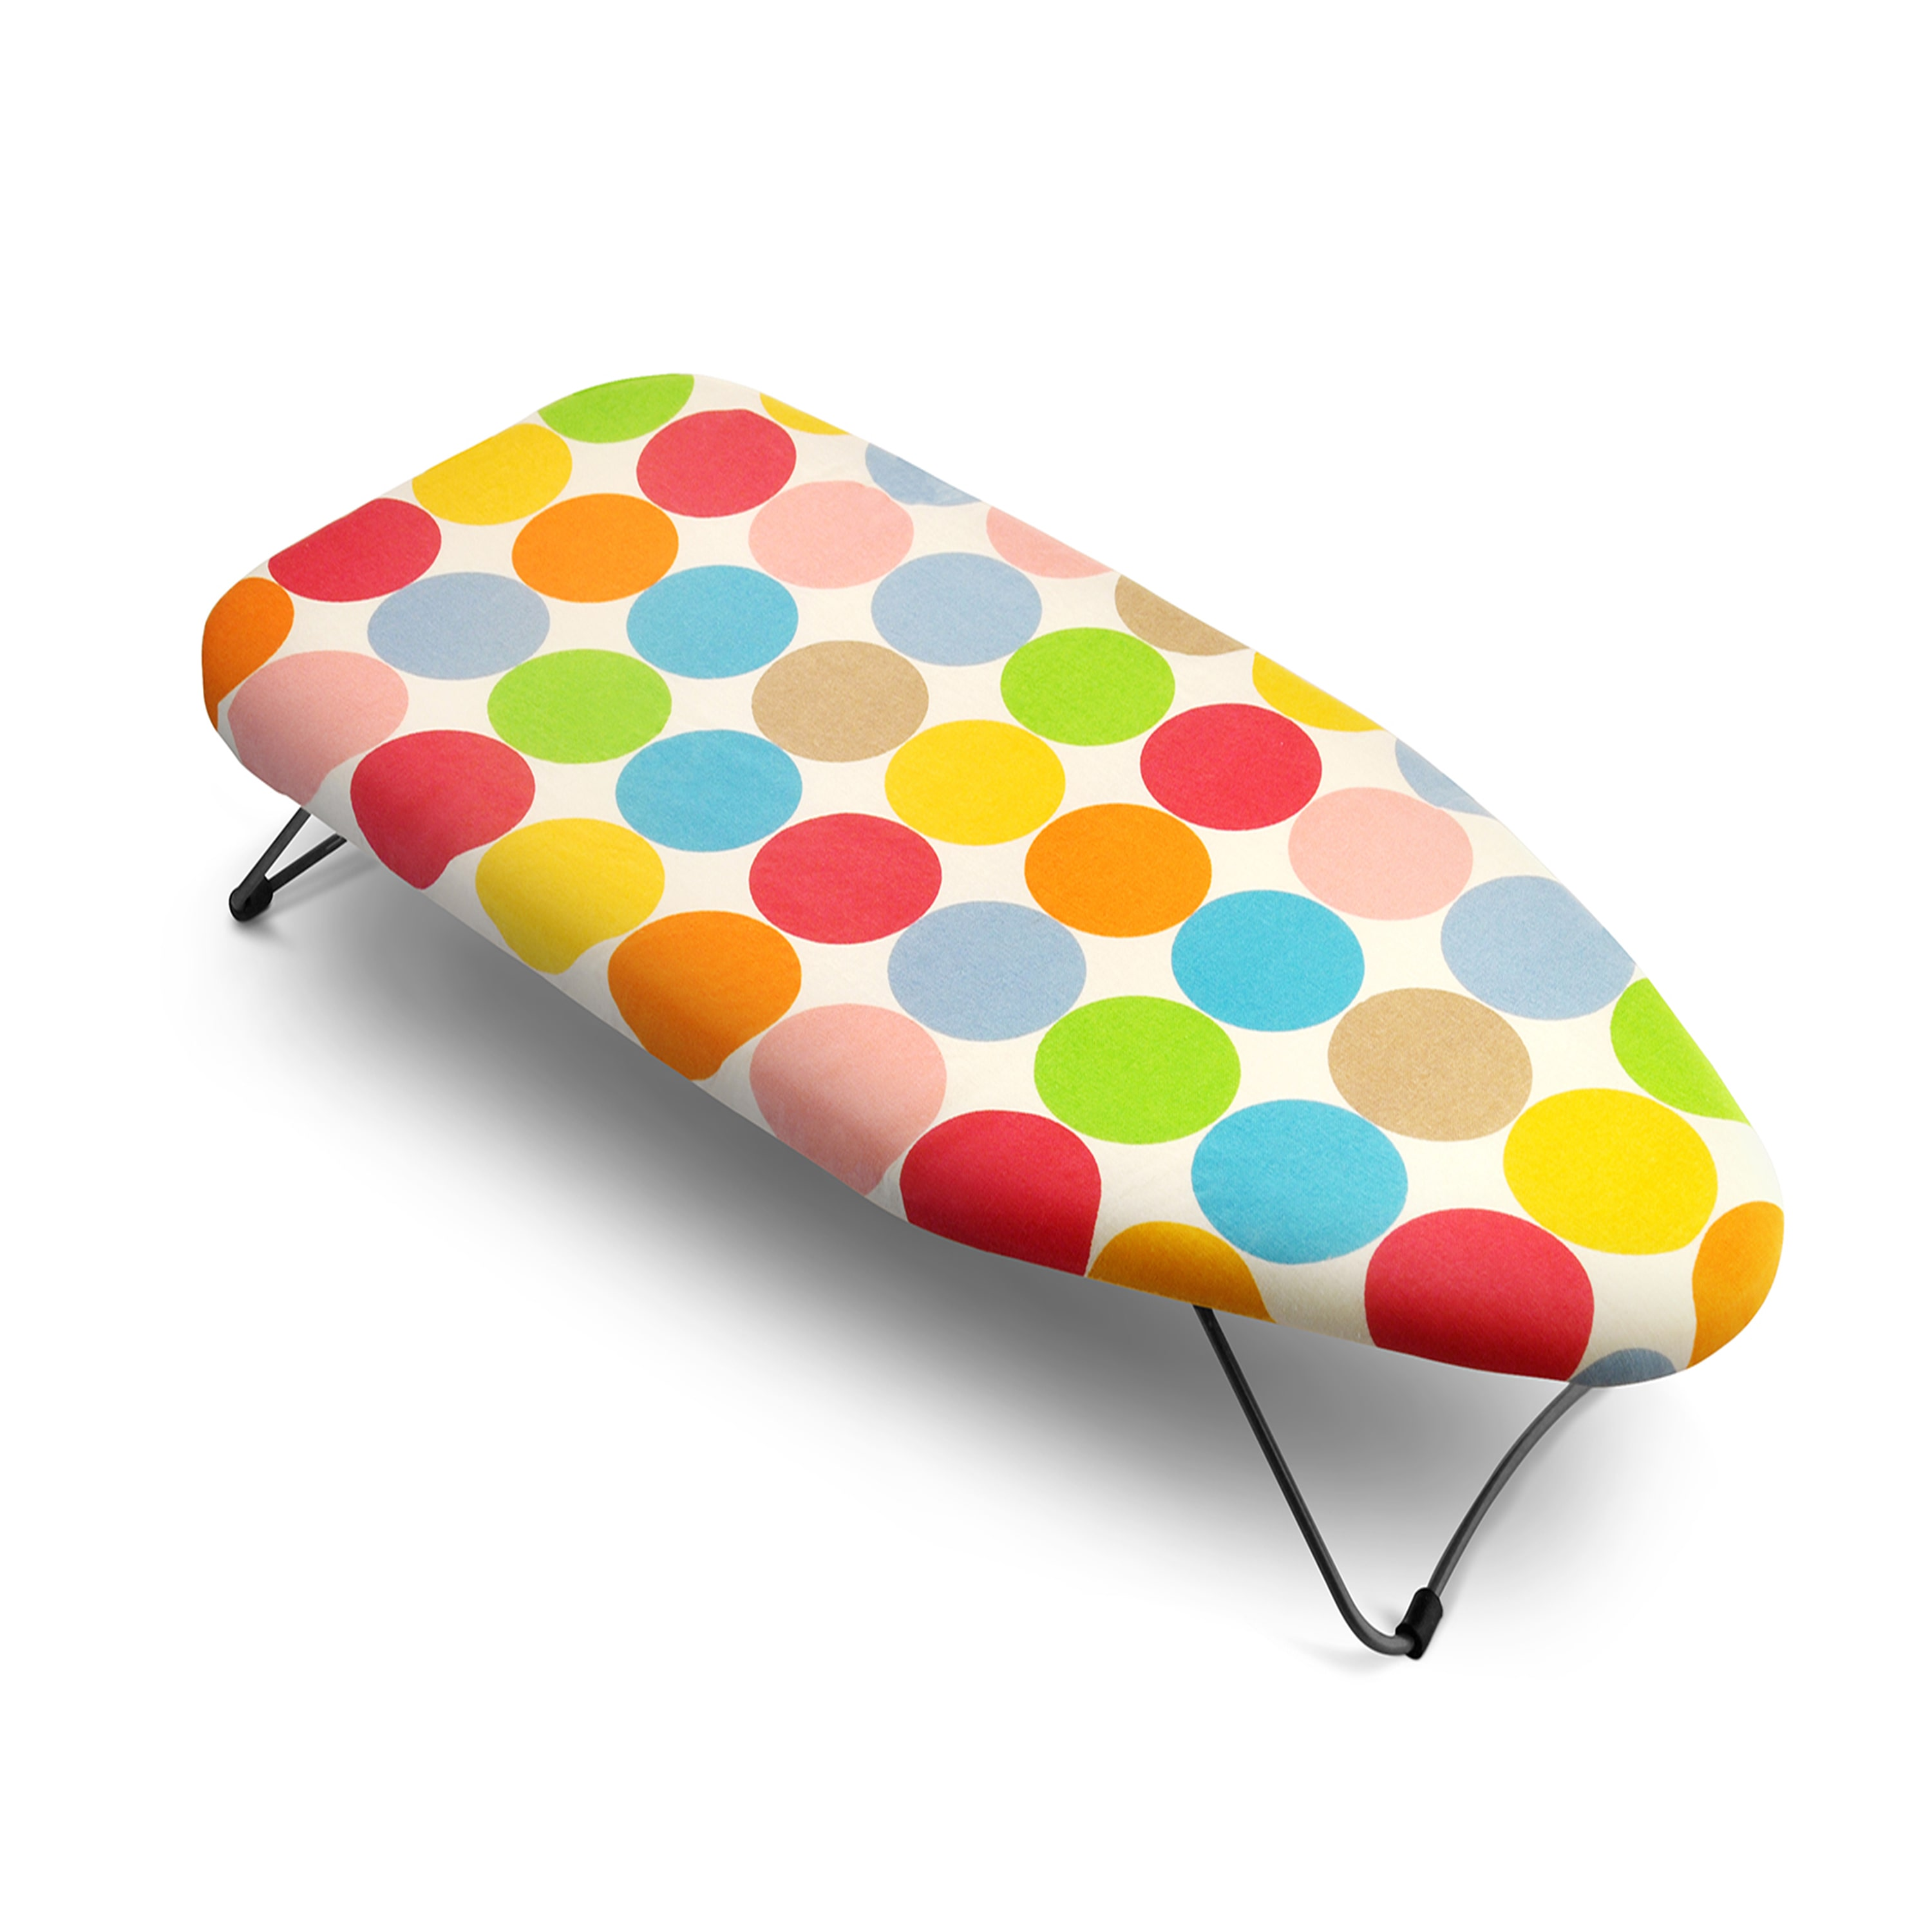 Aristos Mini Table Top Ironing Board